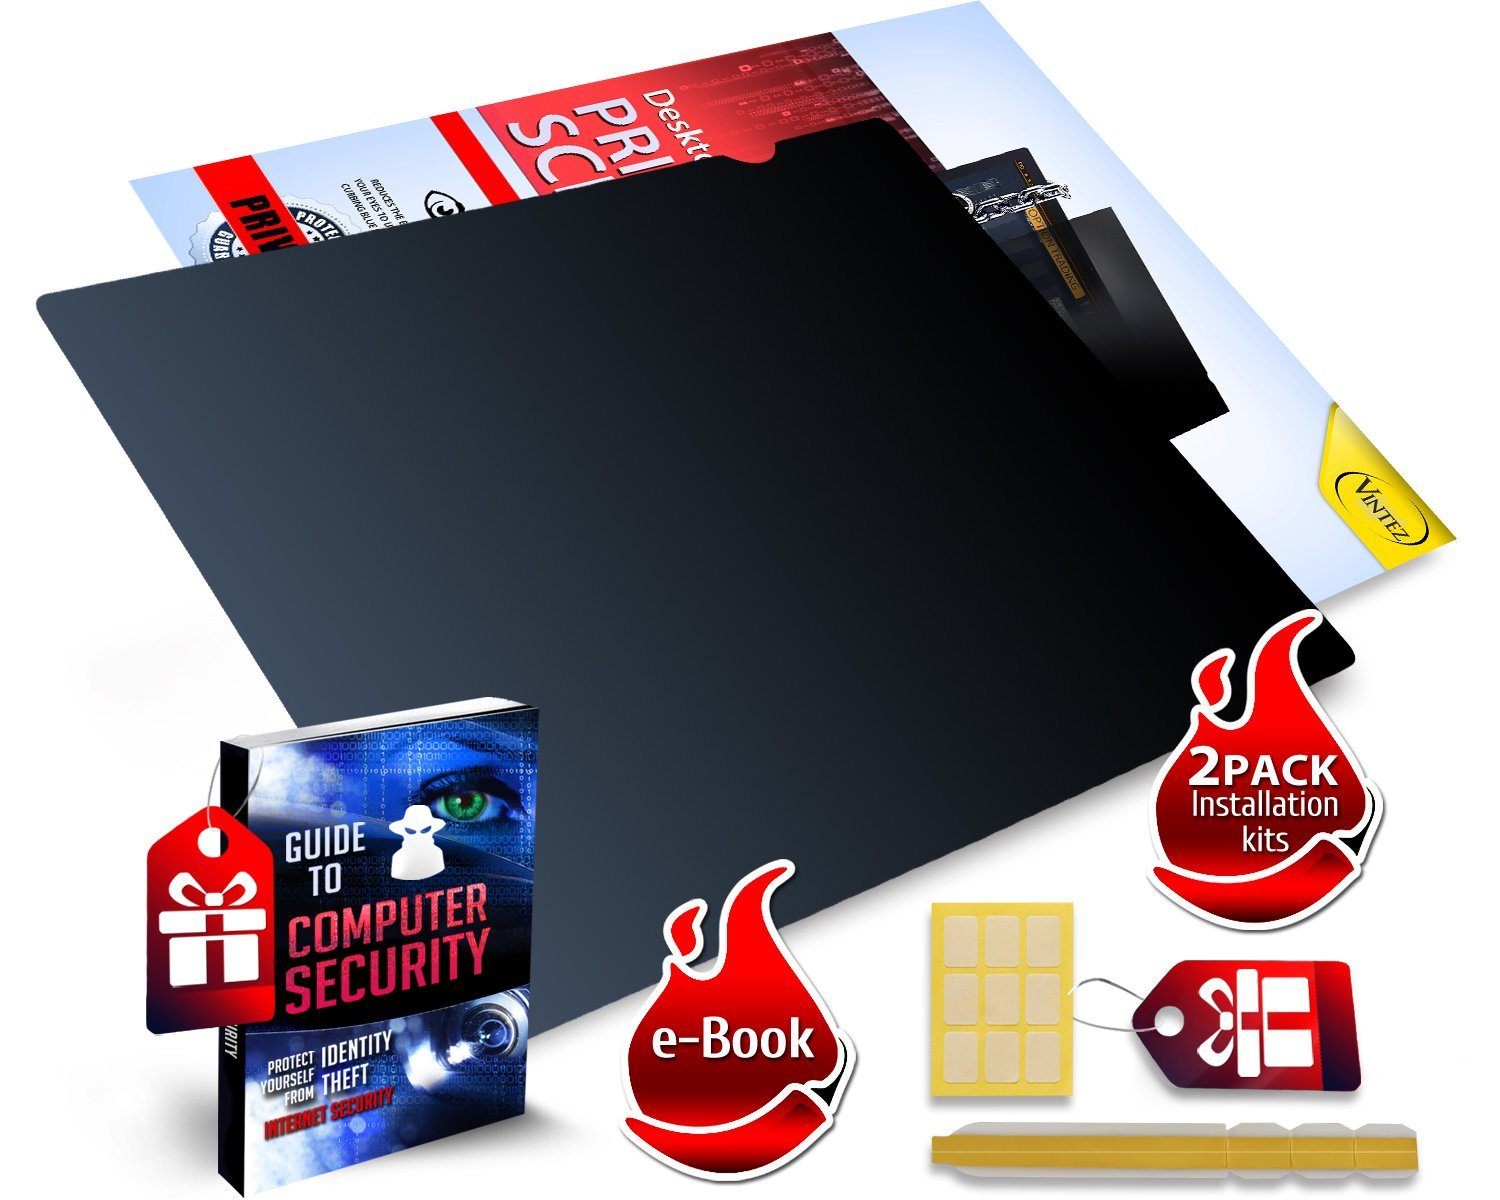 19 Inch - 5:4 Aspect Ratio Computer Privacy Screen Filter for Square Computer Monitor - Anti-Glare - Anti-Scratch Protector Film for Data Confidentiality - Please Measure Carefully! by VINTEZ (Image #3)